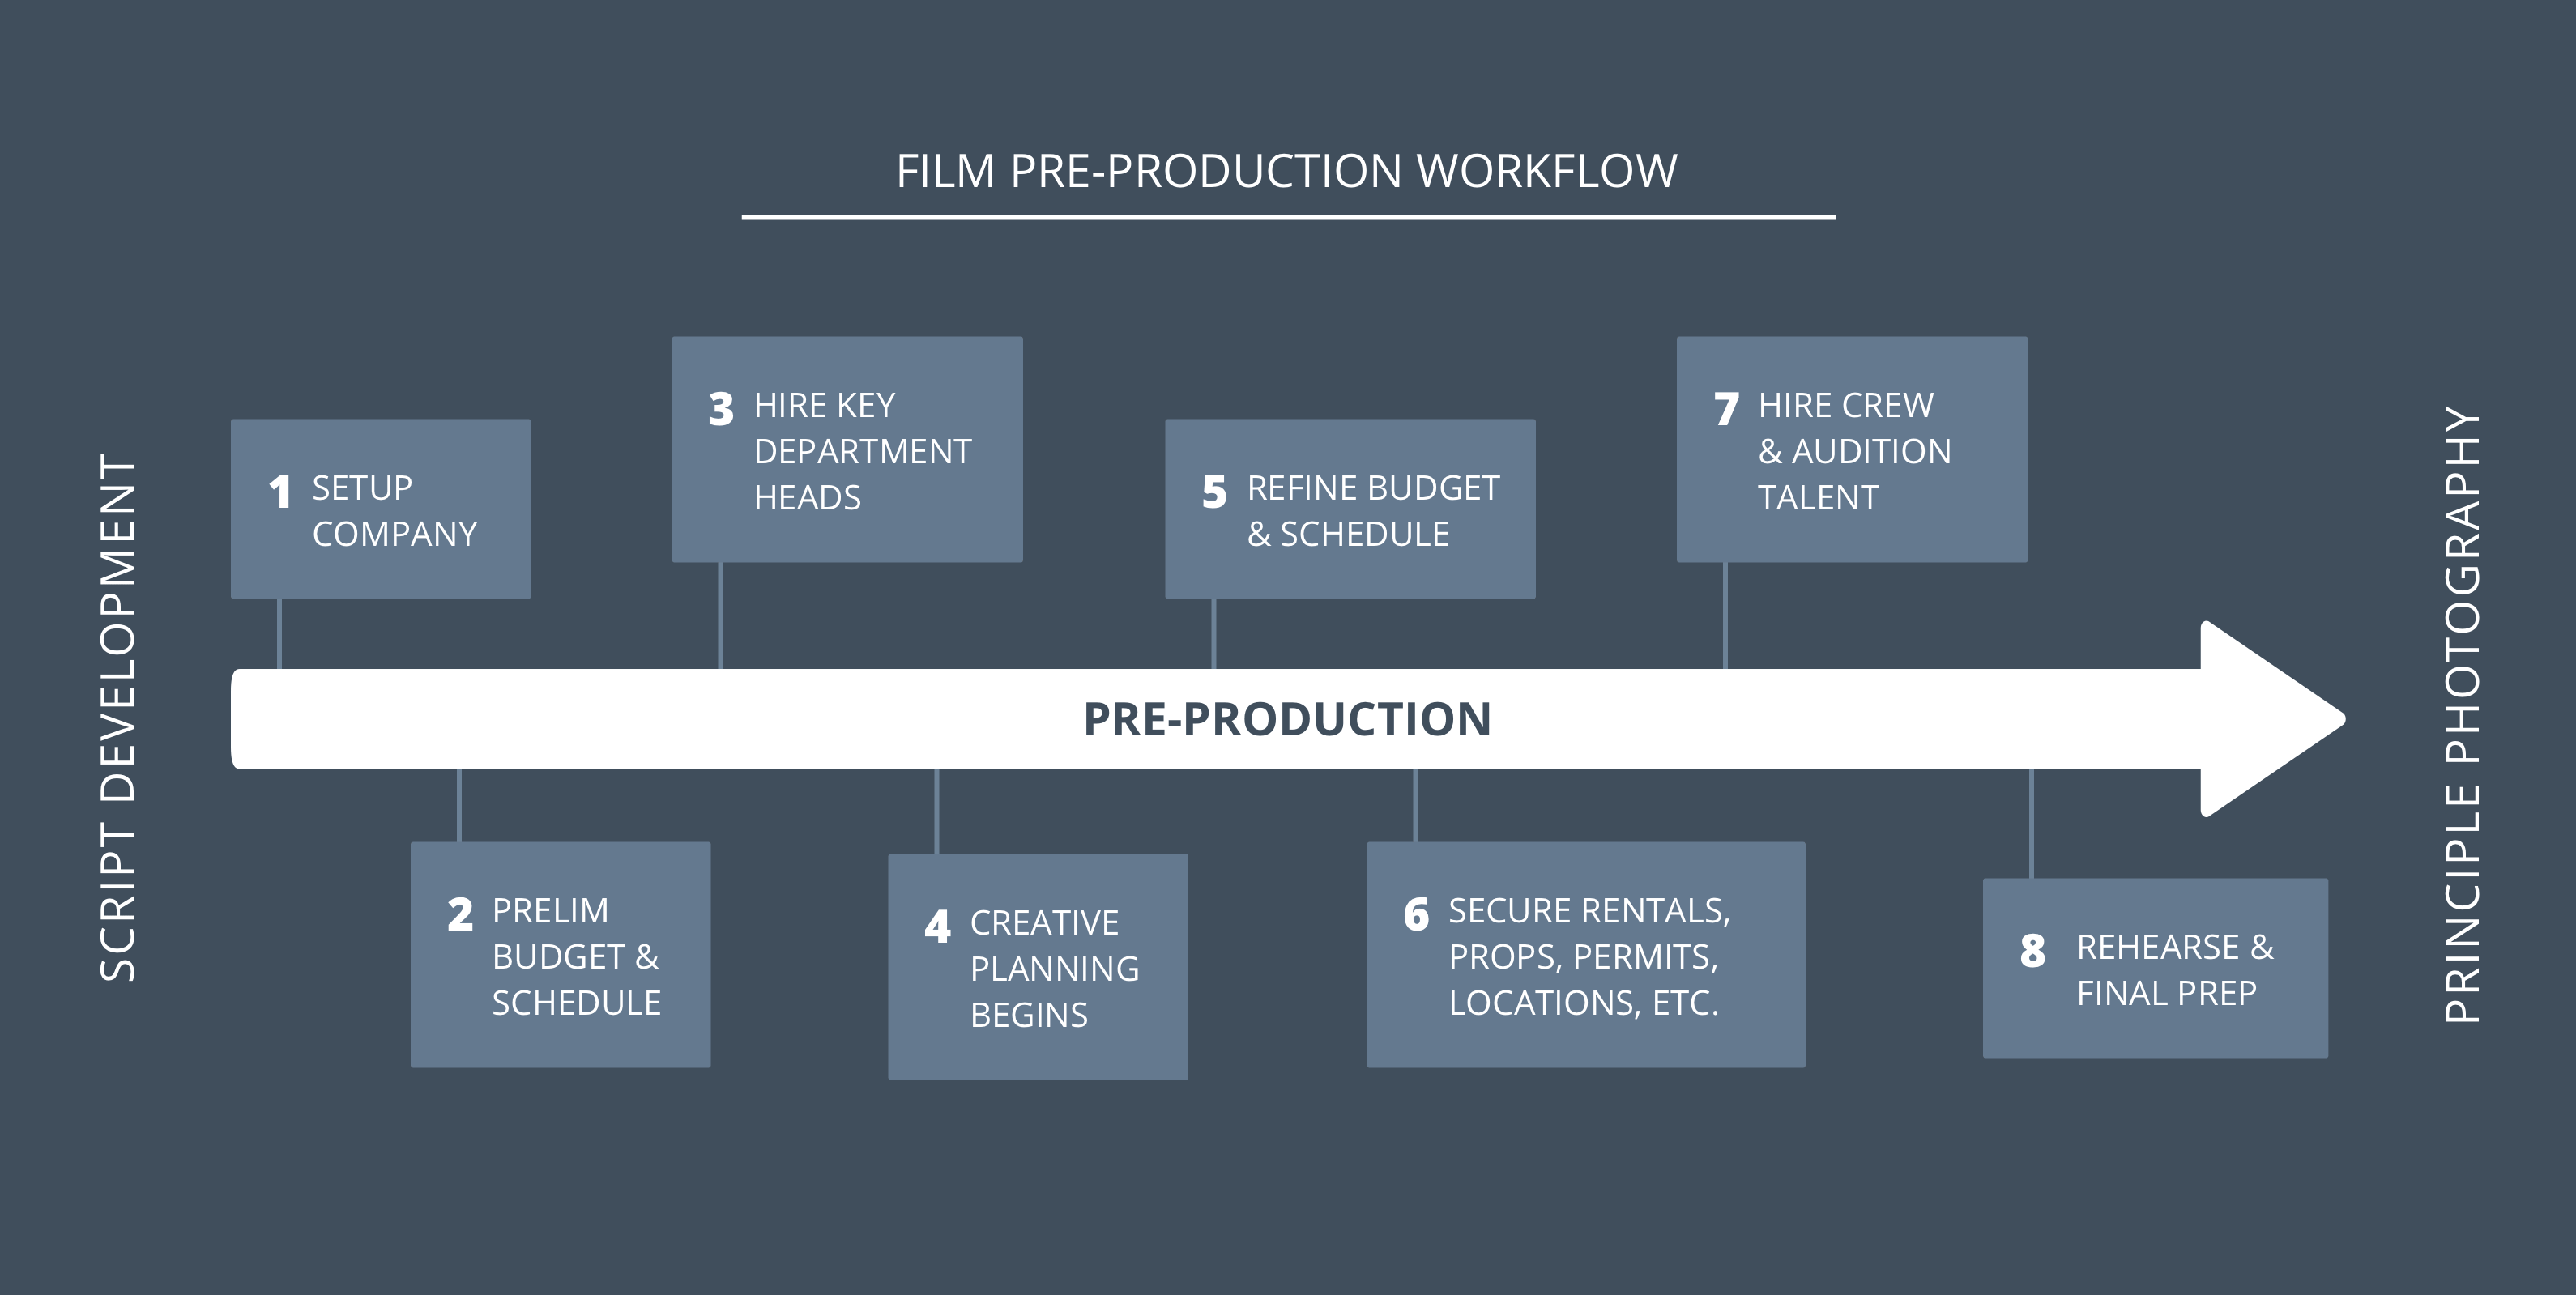 The Complete Film Pre Production Checklist Roadmap - StudioBinder - Pre-Production Checklist and Workflow - StudioBinder